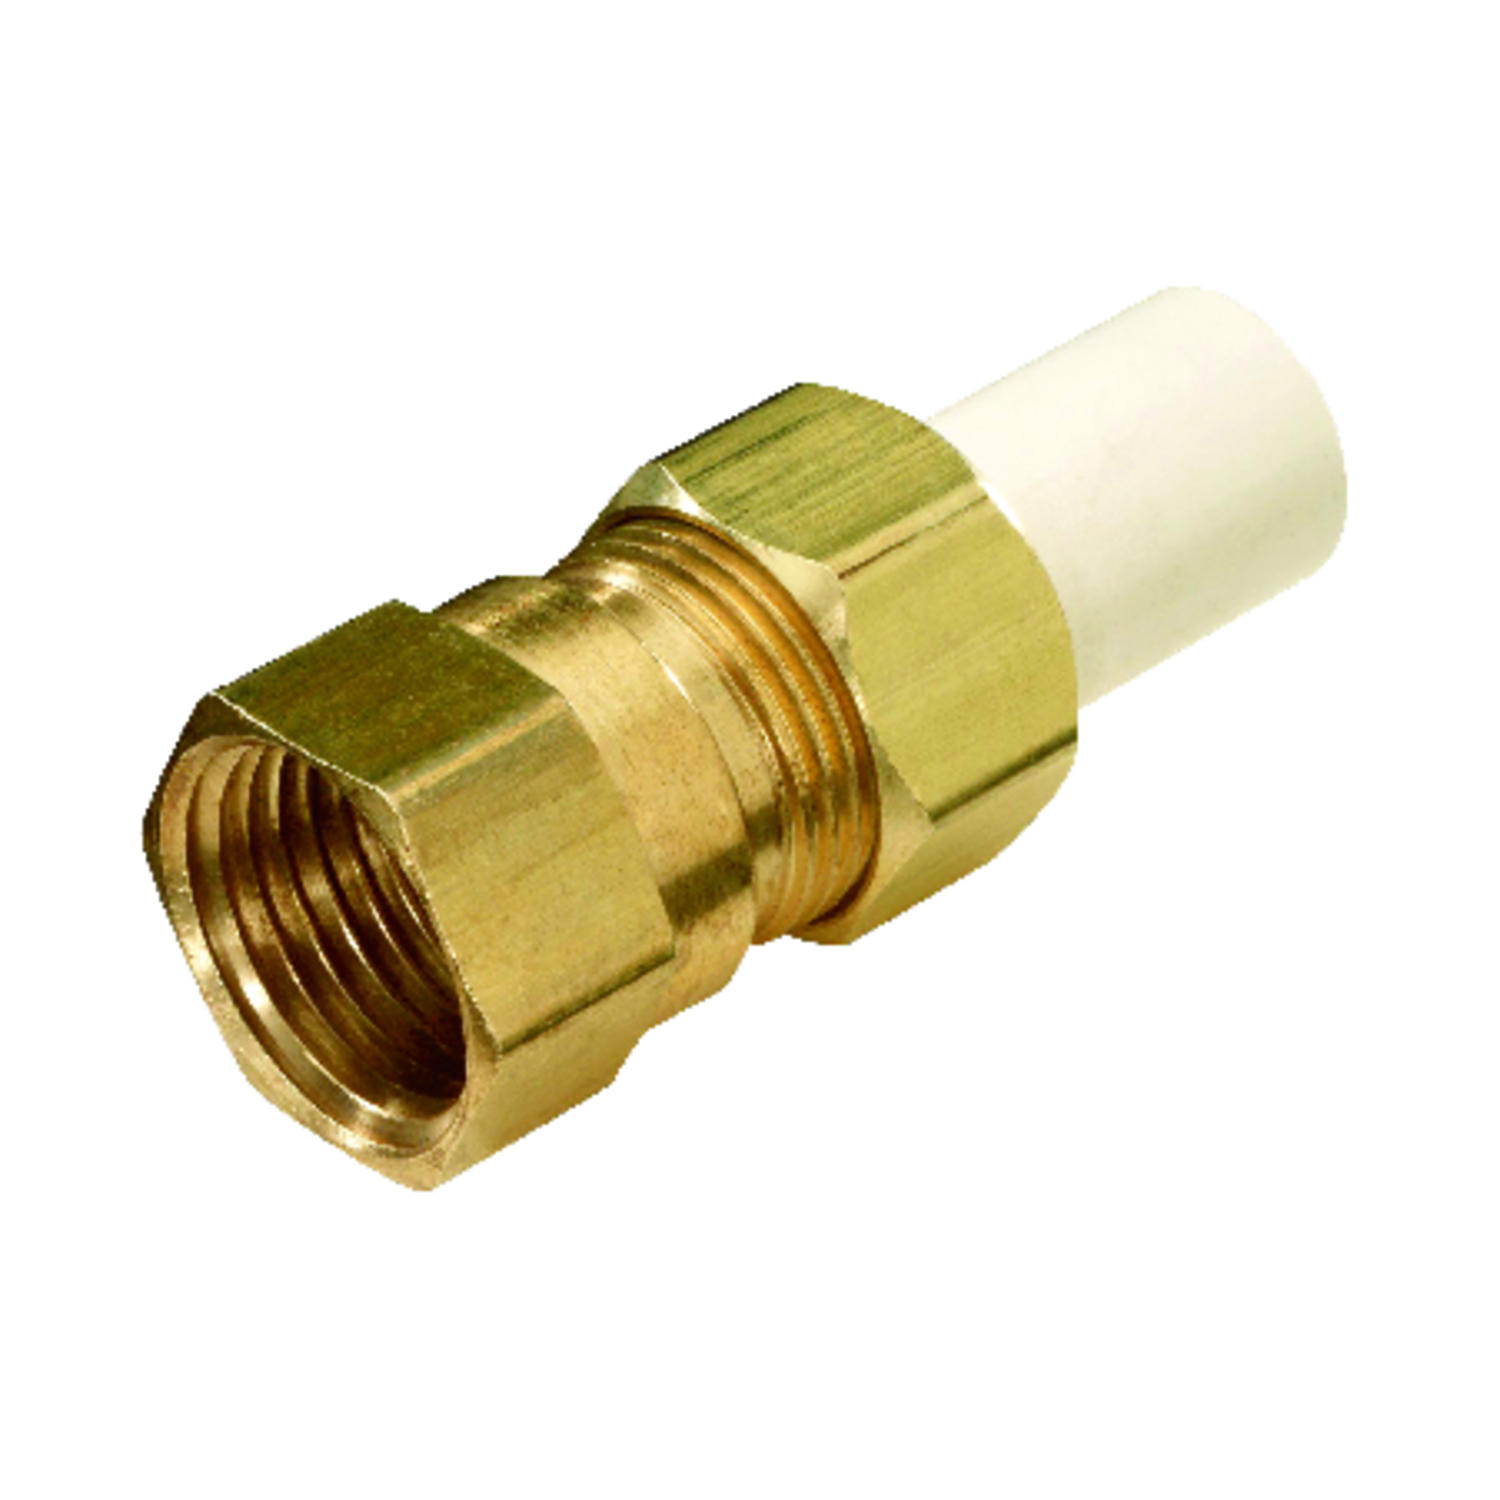 KBI  Schedule 40  3/4 in. FIPT   x 3/4 in. Dia. Spigot  CPVC  Transition Adapter